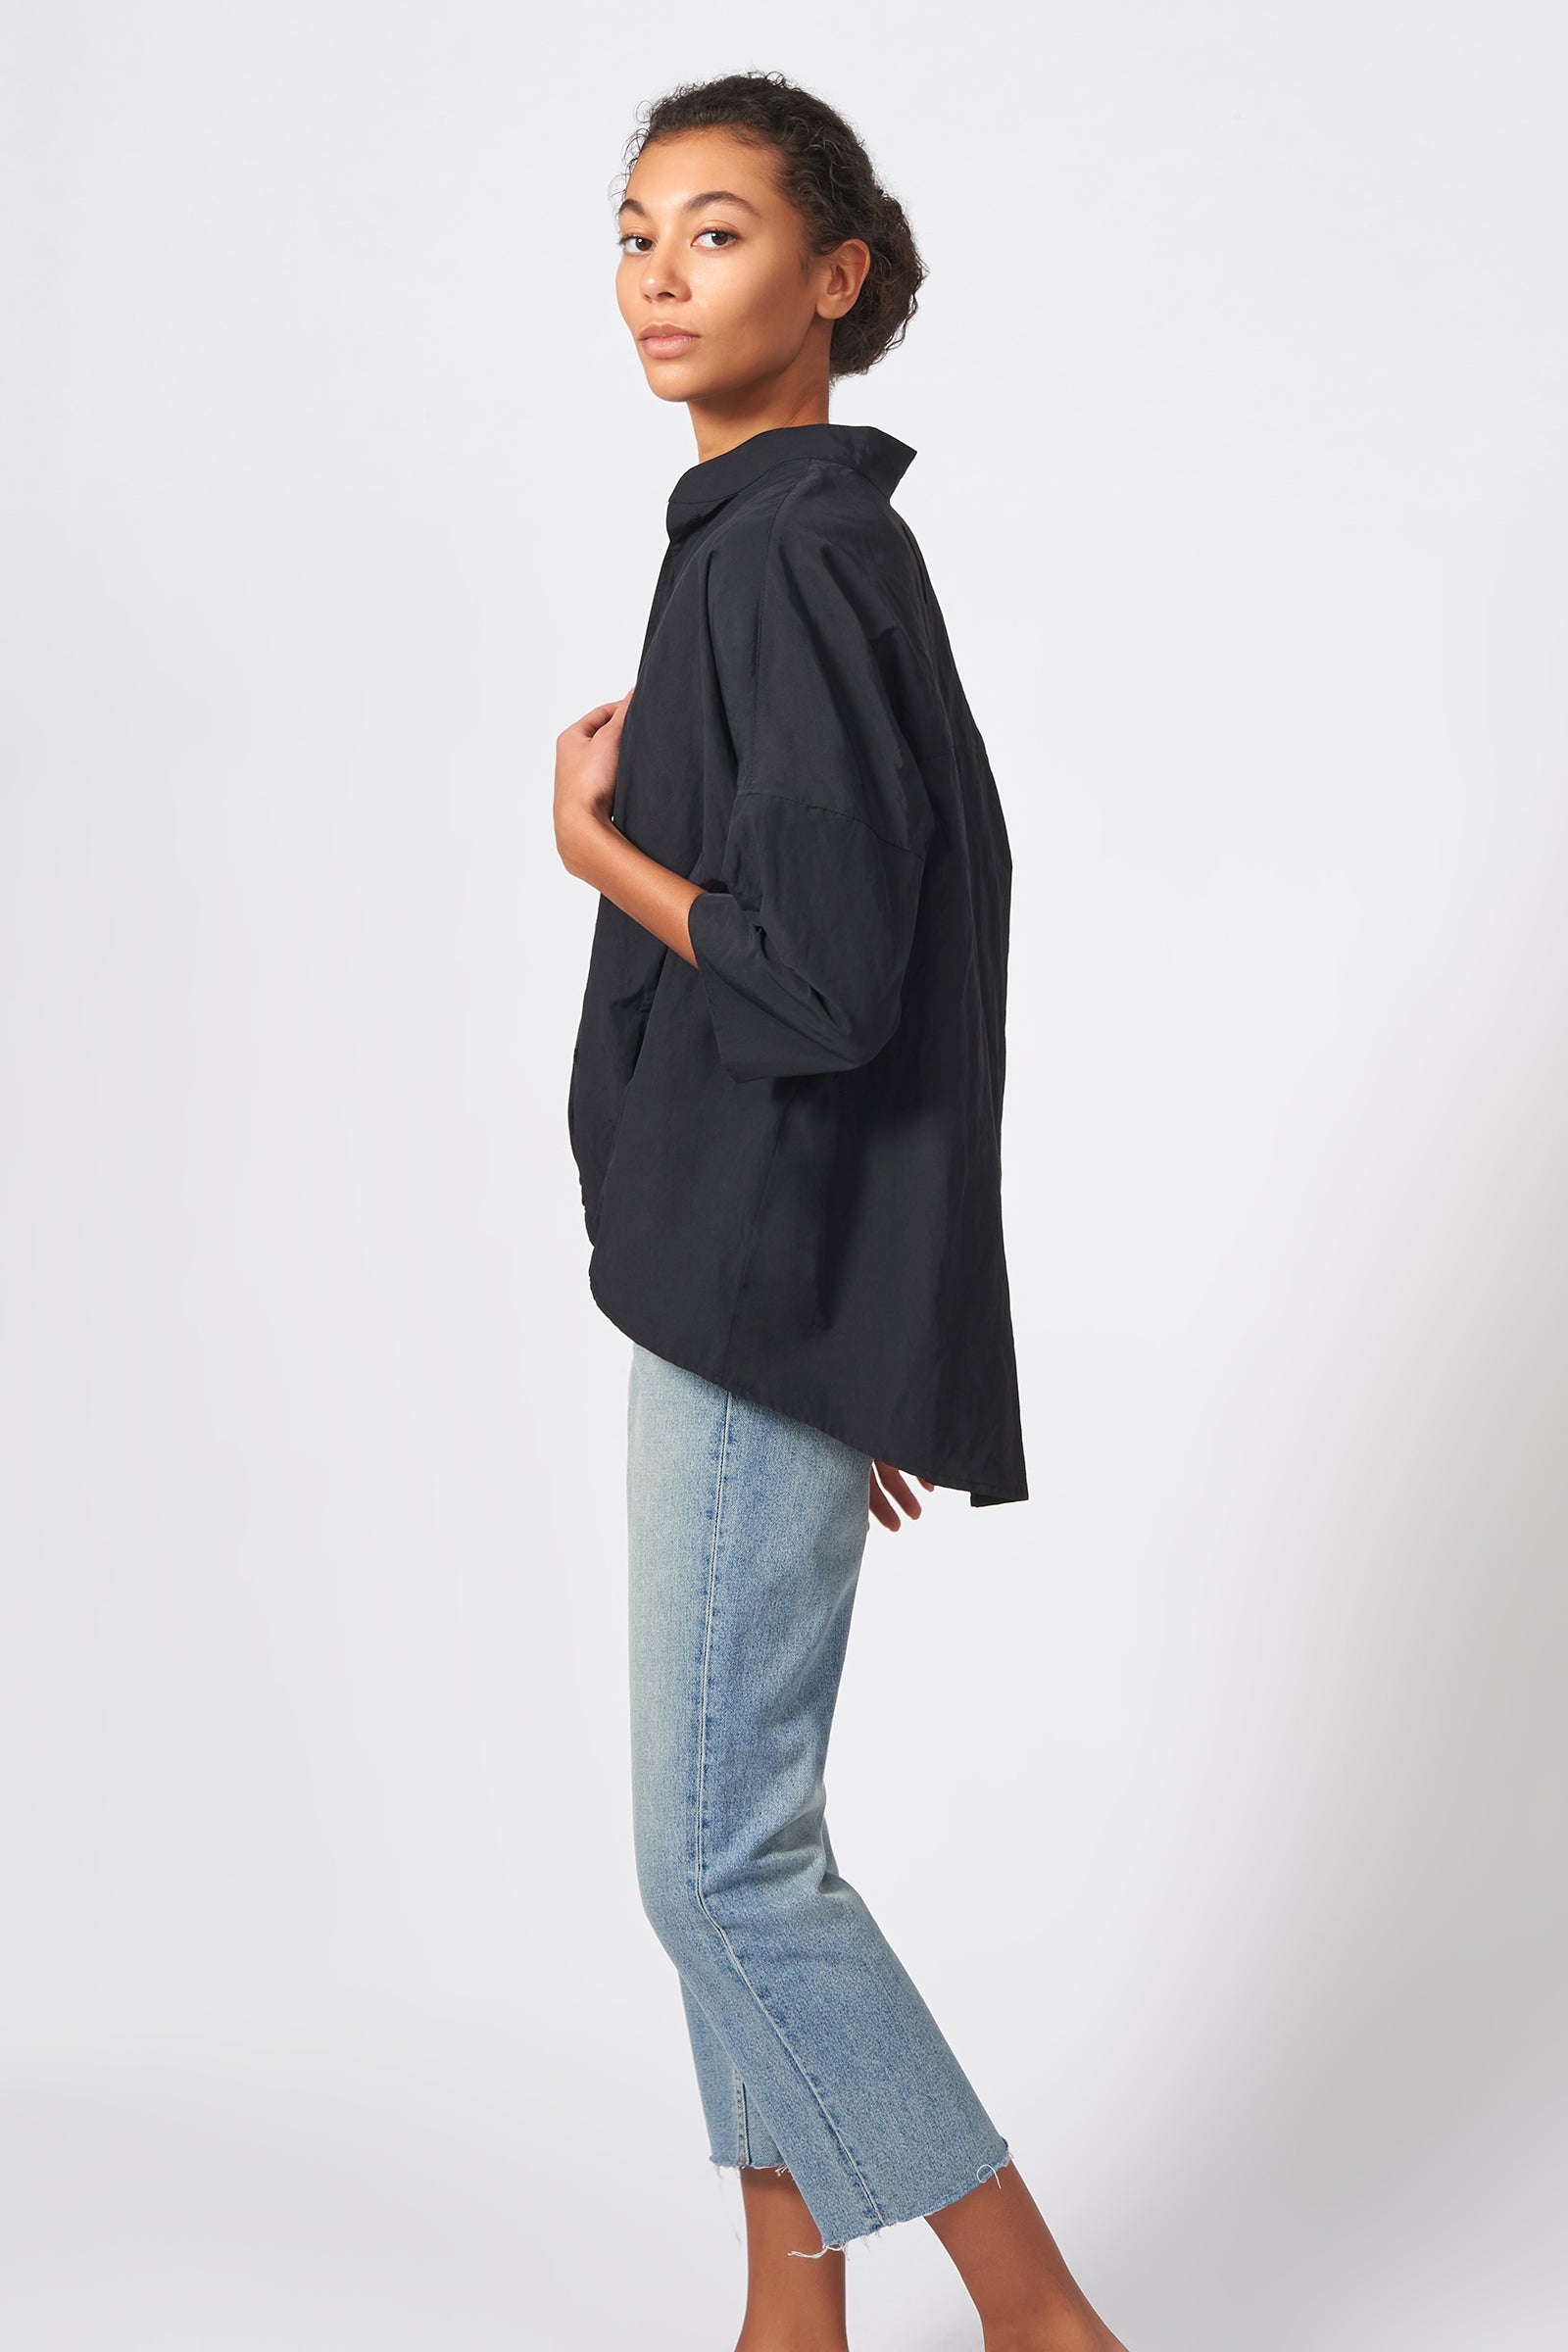 Kal Rieman Pleat Hem Kimono Cotton Nylon in Black on Model Side View